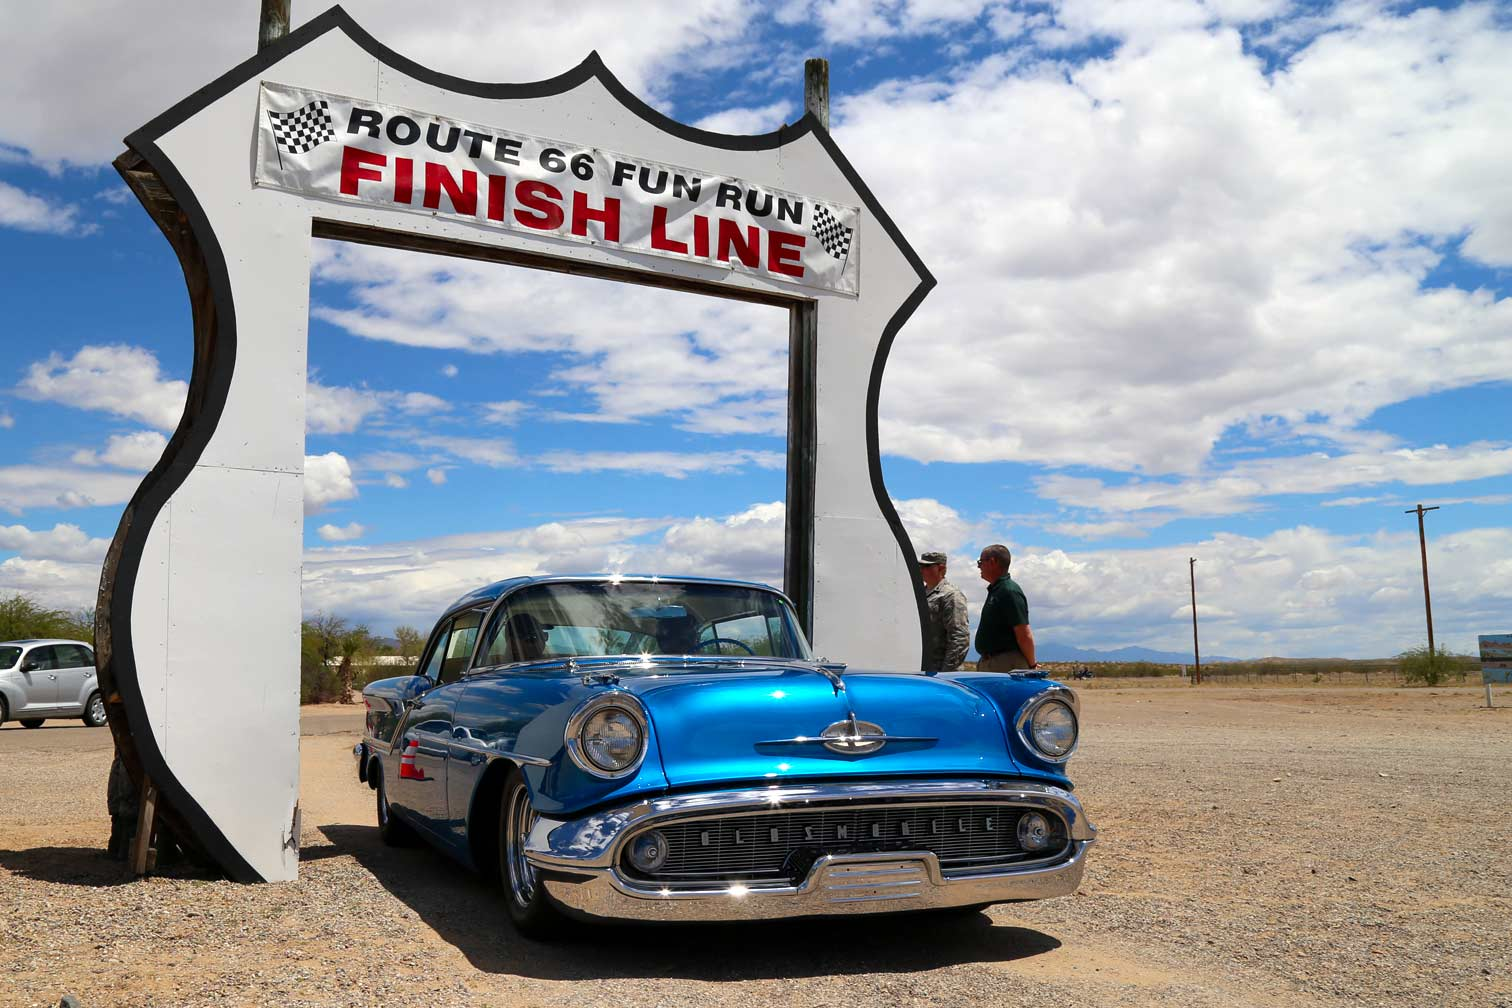 St Annual Route Fun Run Visit Arizona - Tubac az car show 2018